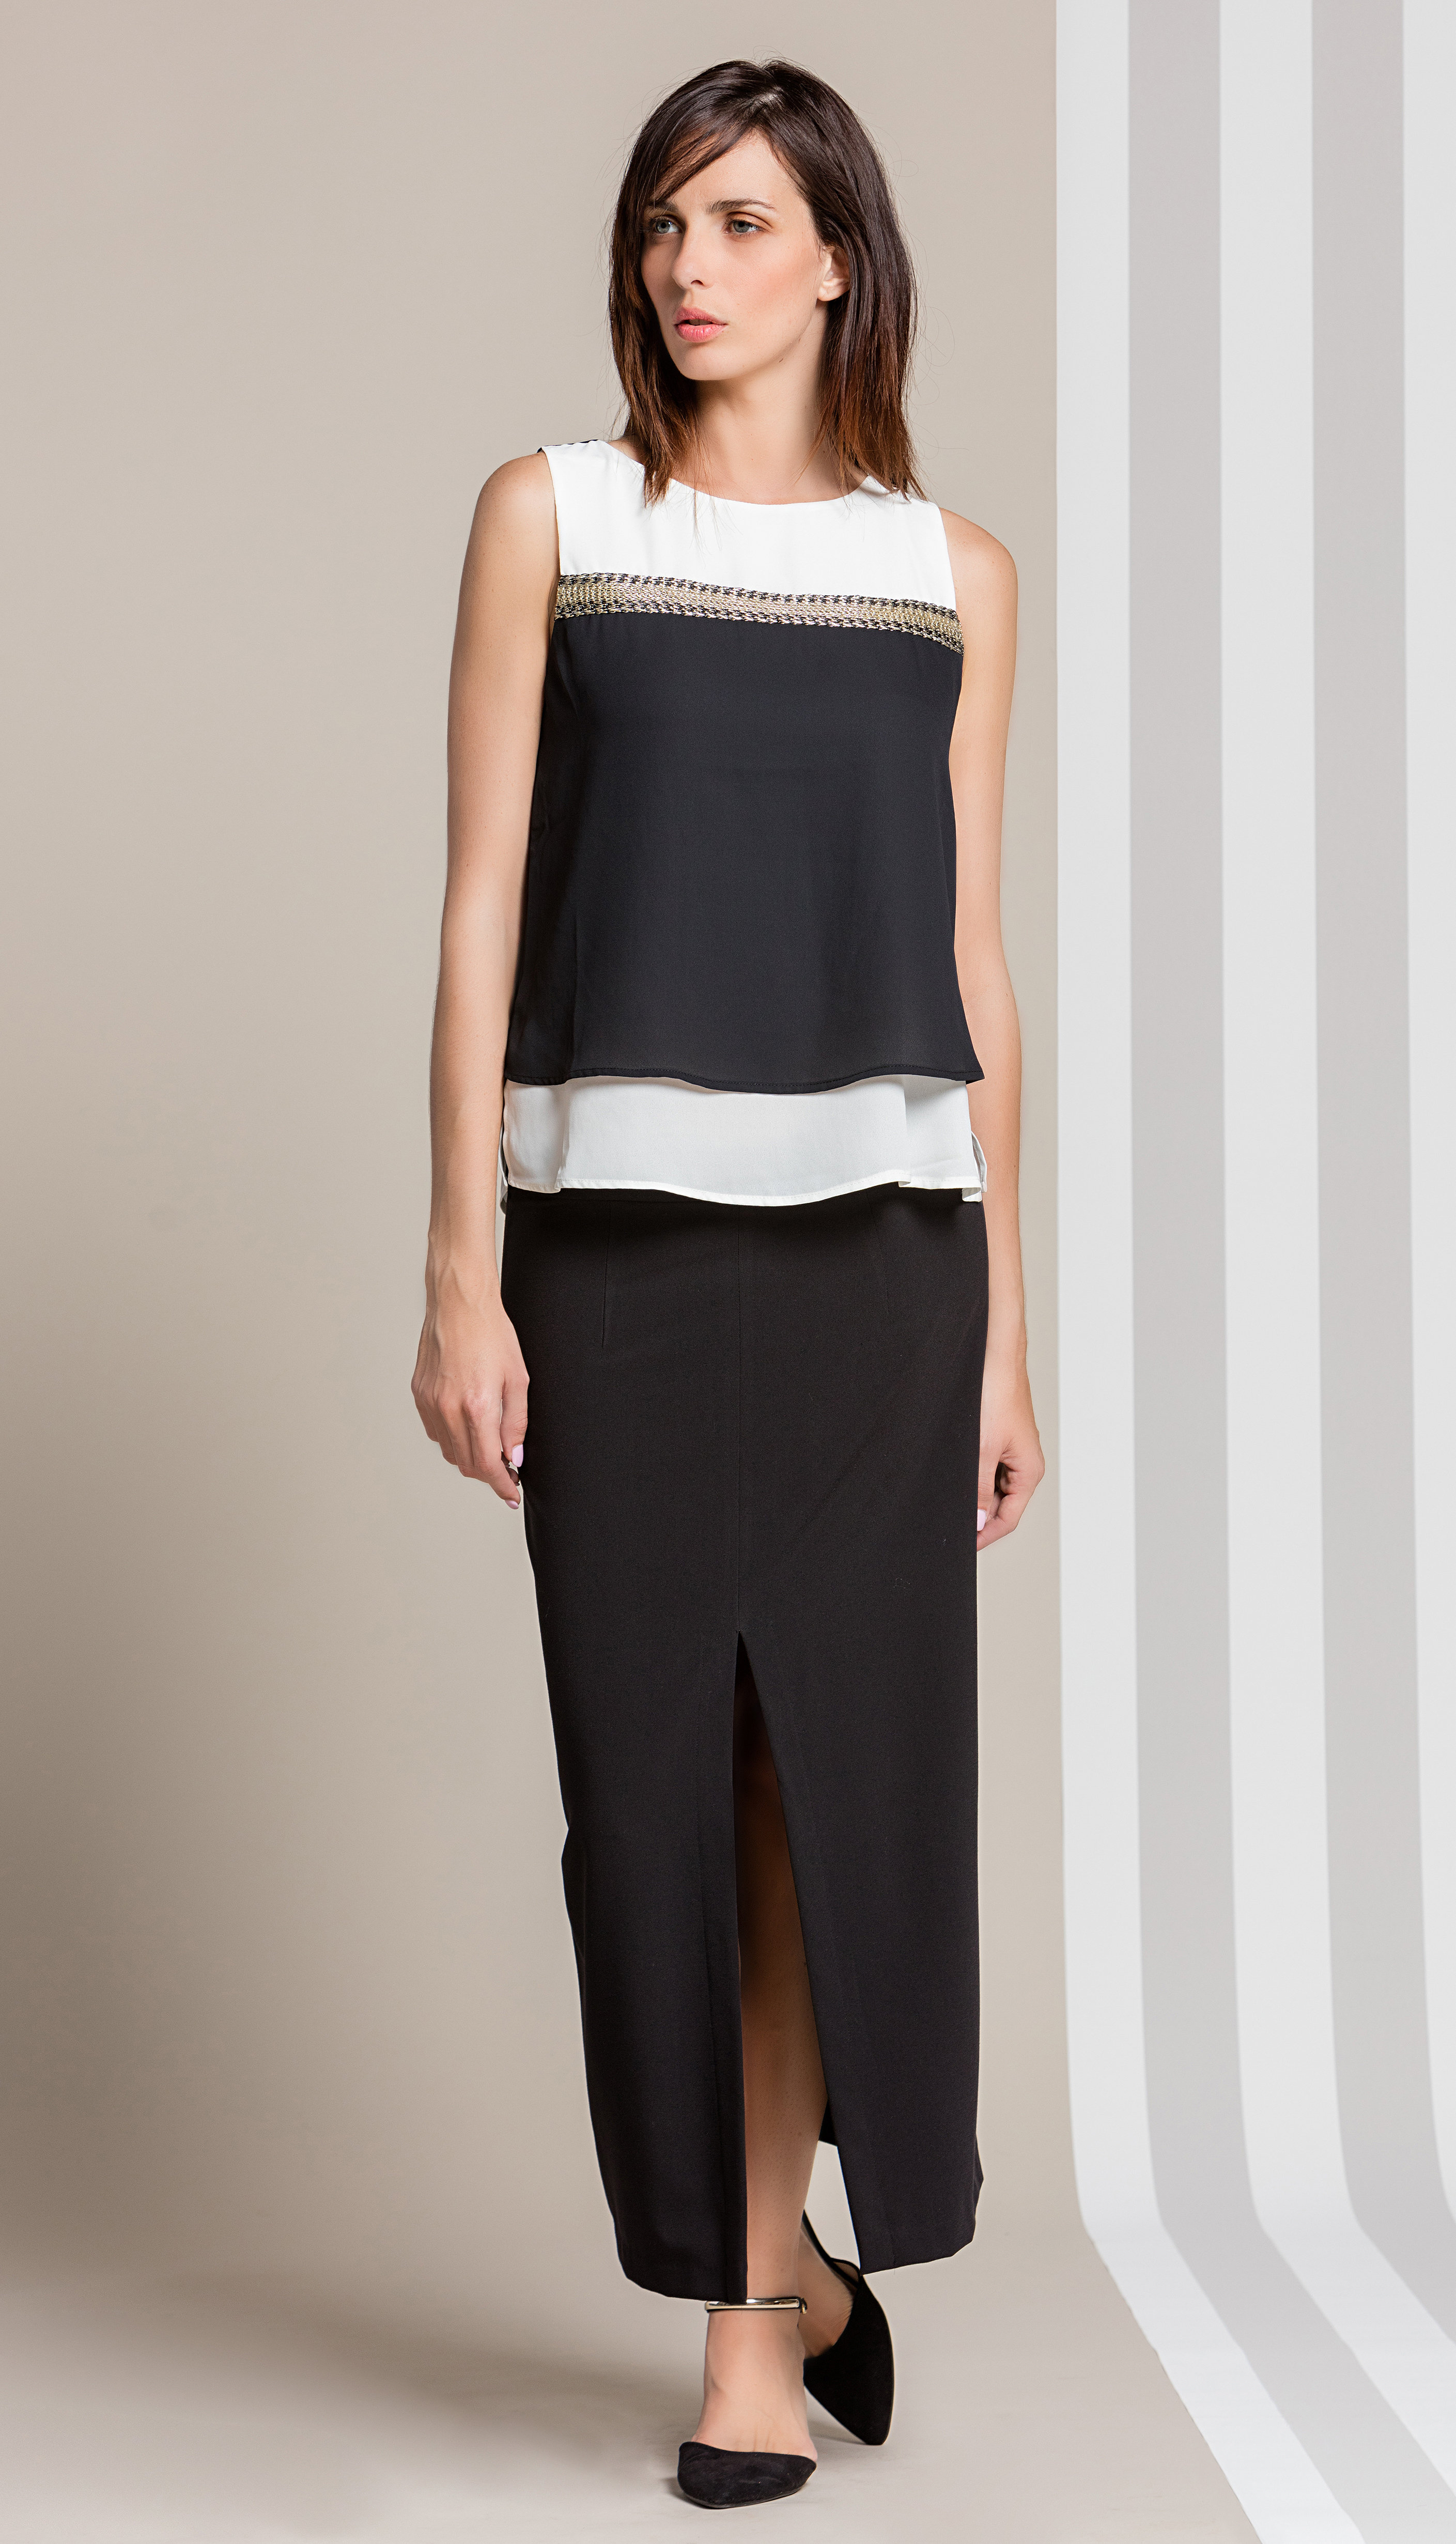 Paul Brial: Waves Colorblock Bling Tunic (More Colors!)